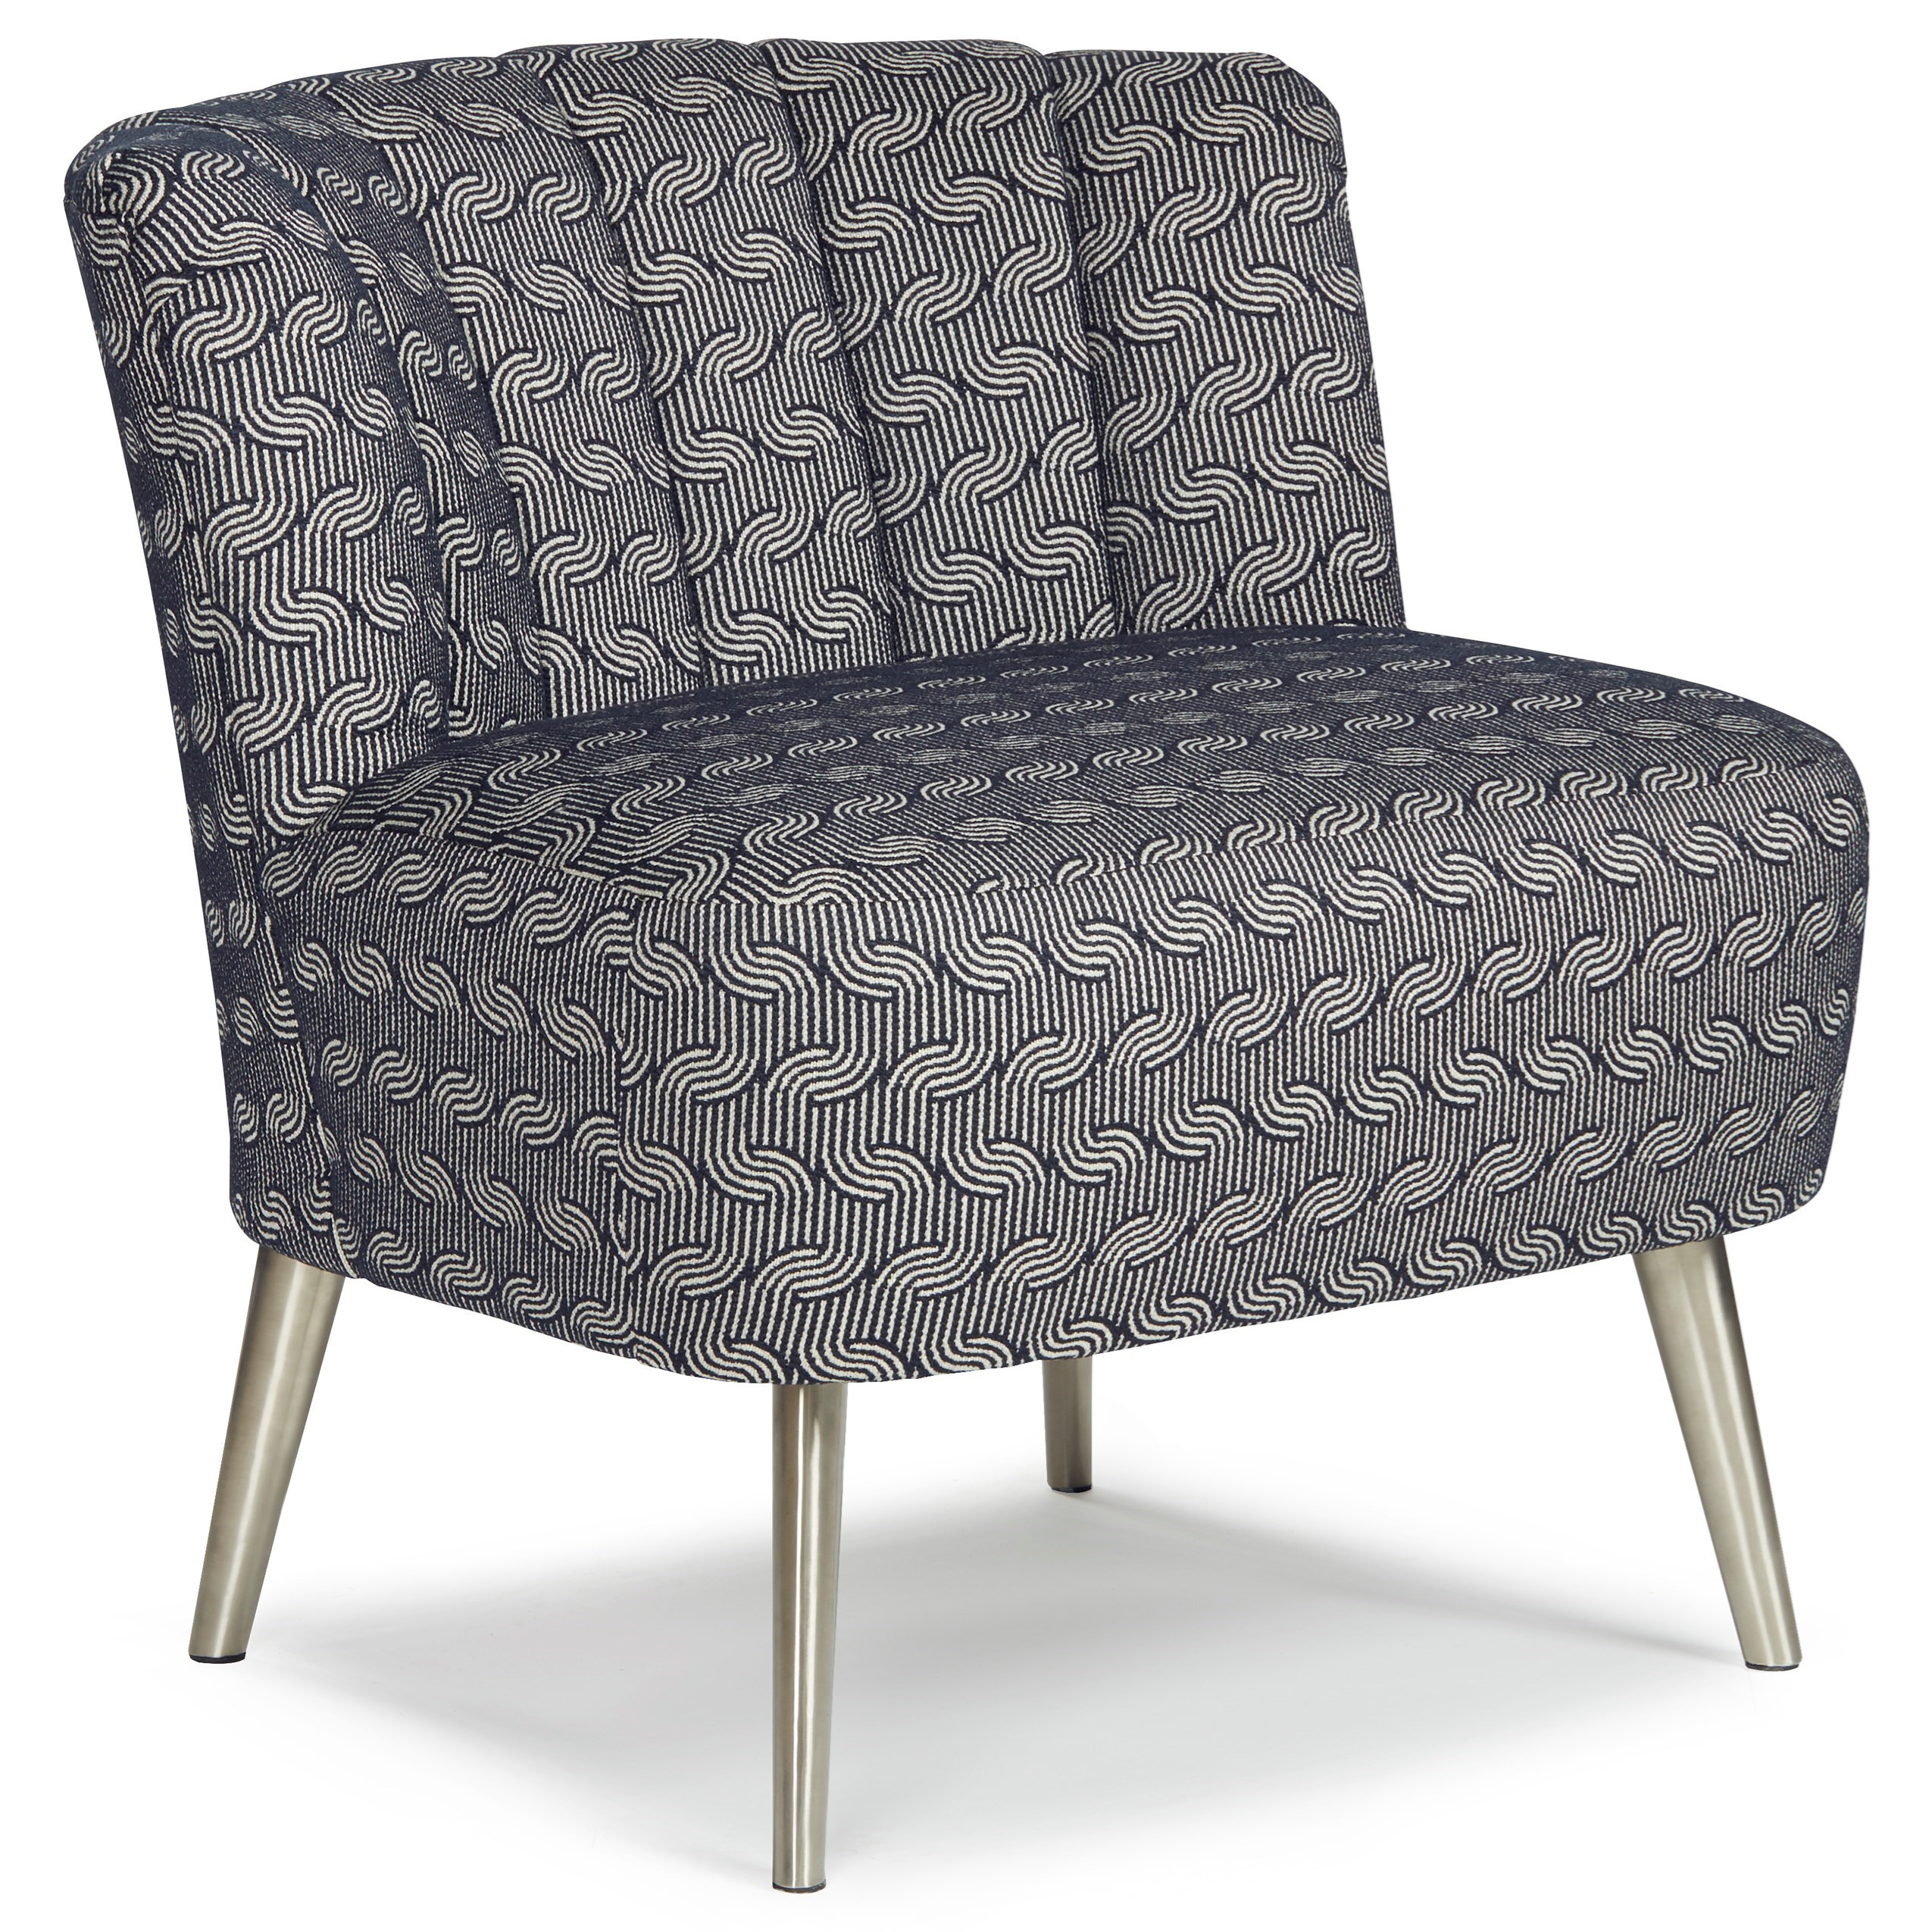 Best Xpress - Ameretta Accent Chair by Best Home Furnishings at Walker's Furniture